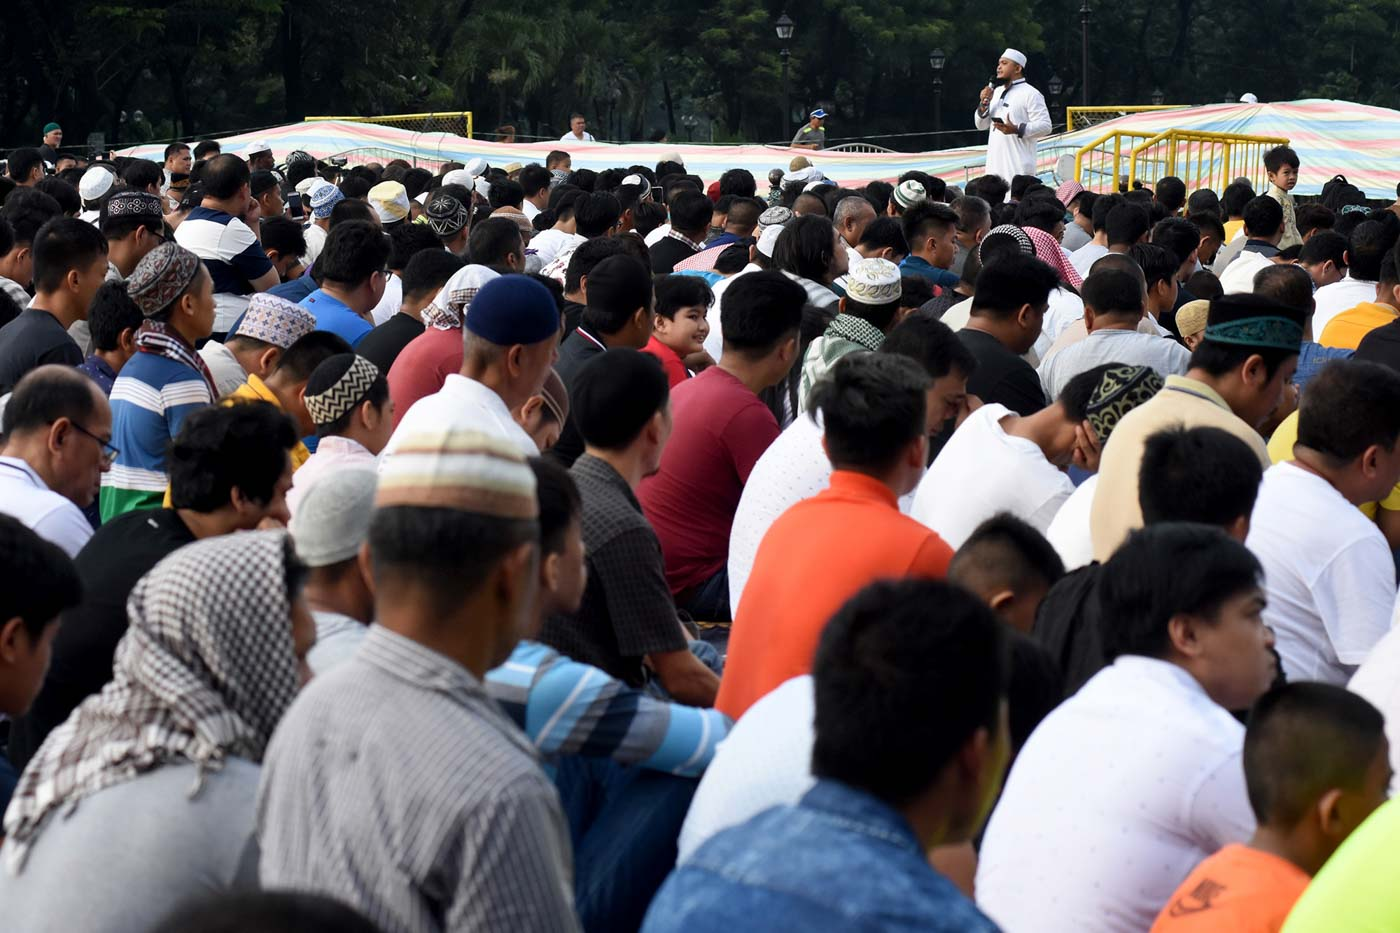 IMAM'S PREACHING. Ustadh Fahad Tambara, Islamic propagator of Amanah Islam Dawah Center, delivers his sermon during the celebration of the Eid'l Adha at the Quezon Memorial Circle on August 21, 2018. Photo by Angie de Silva/Rappler